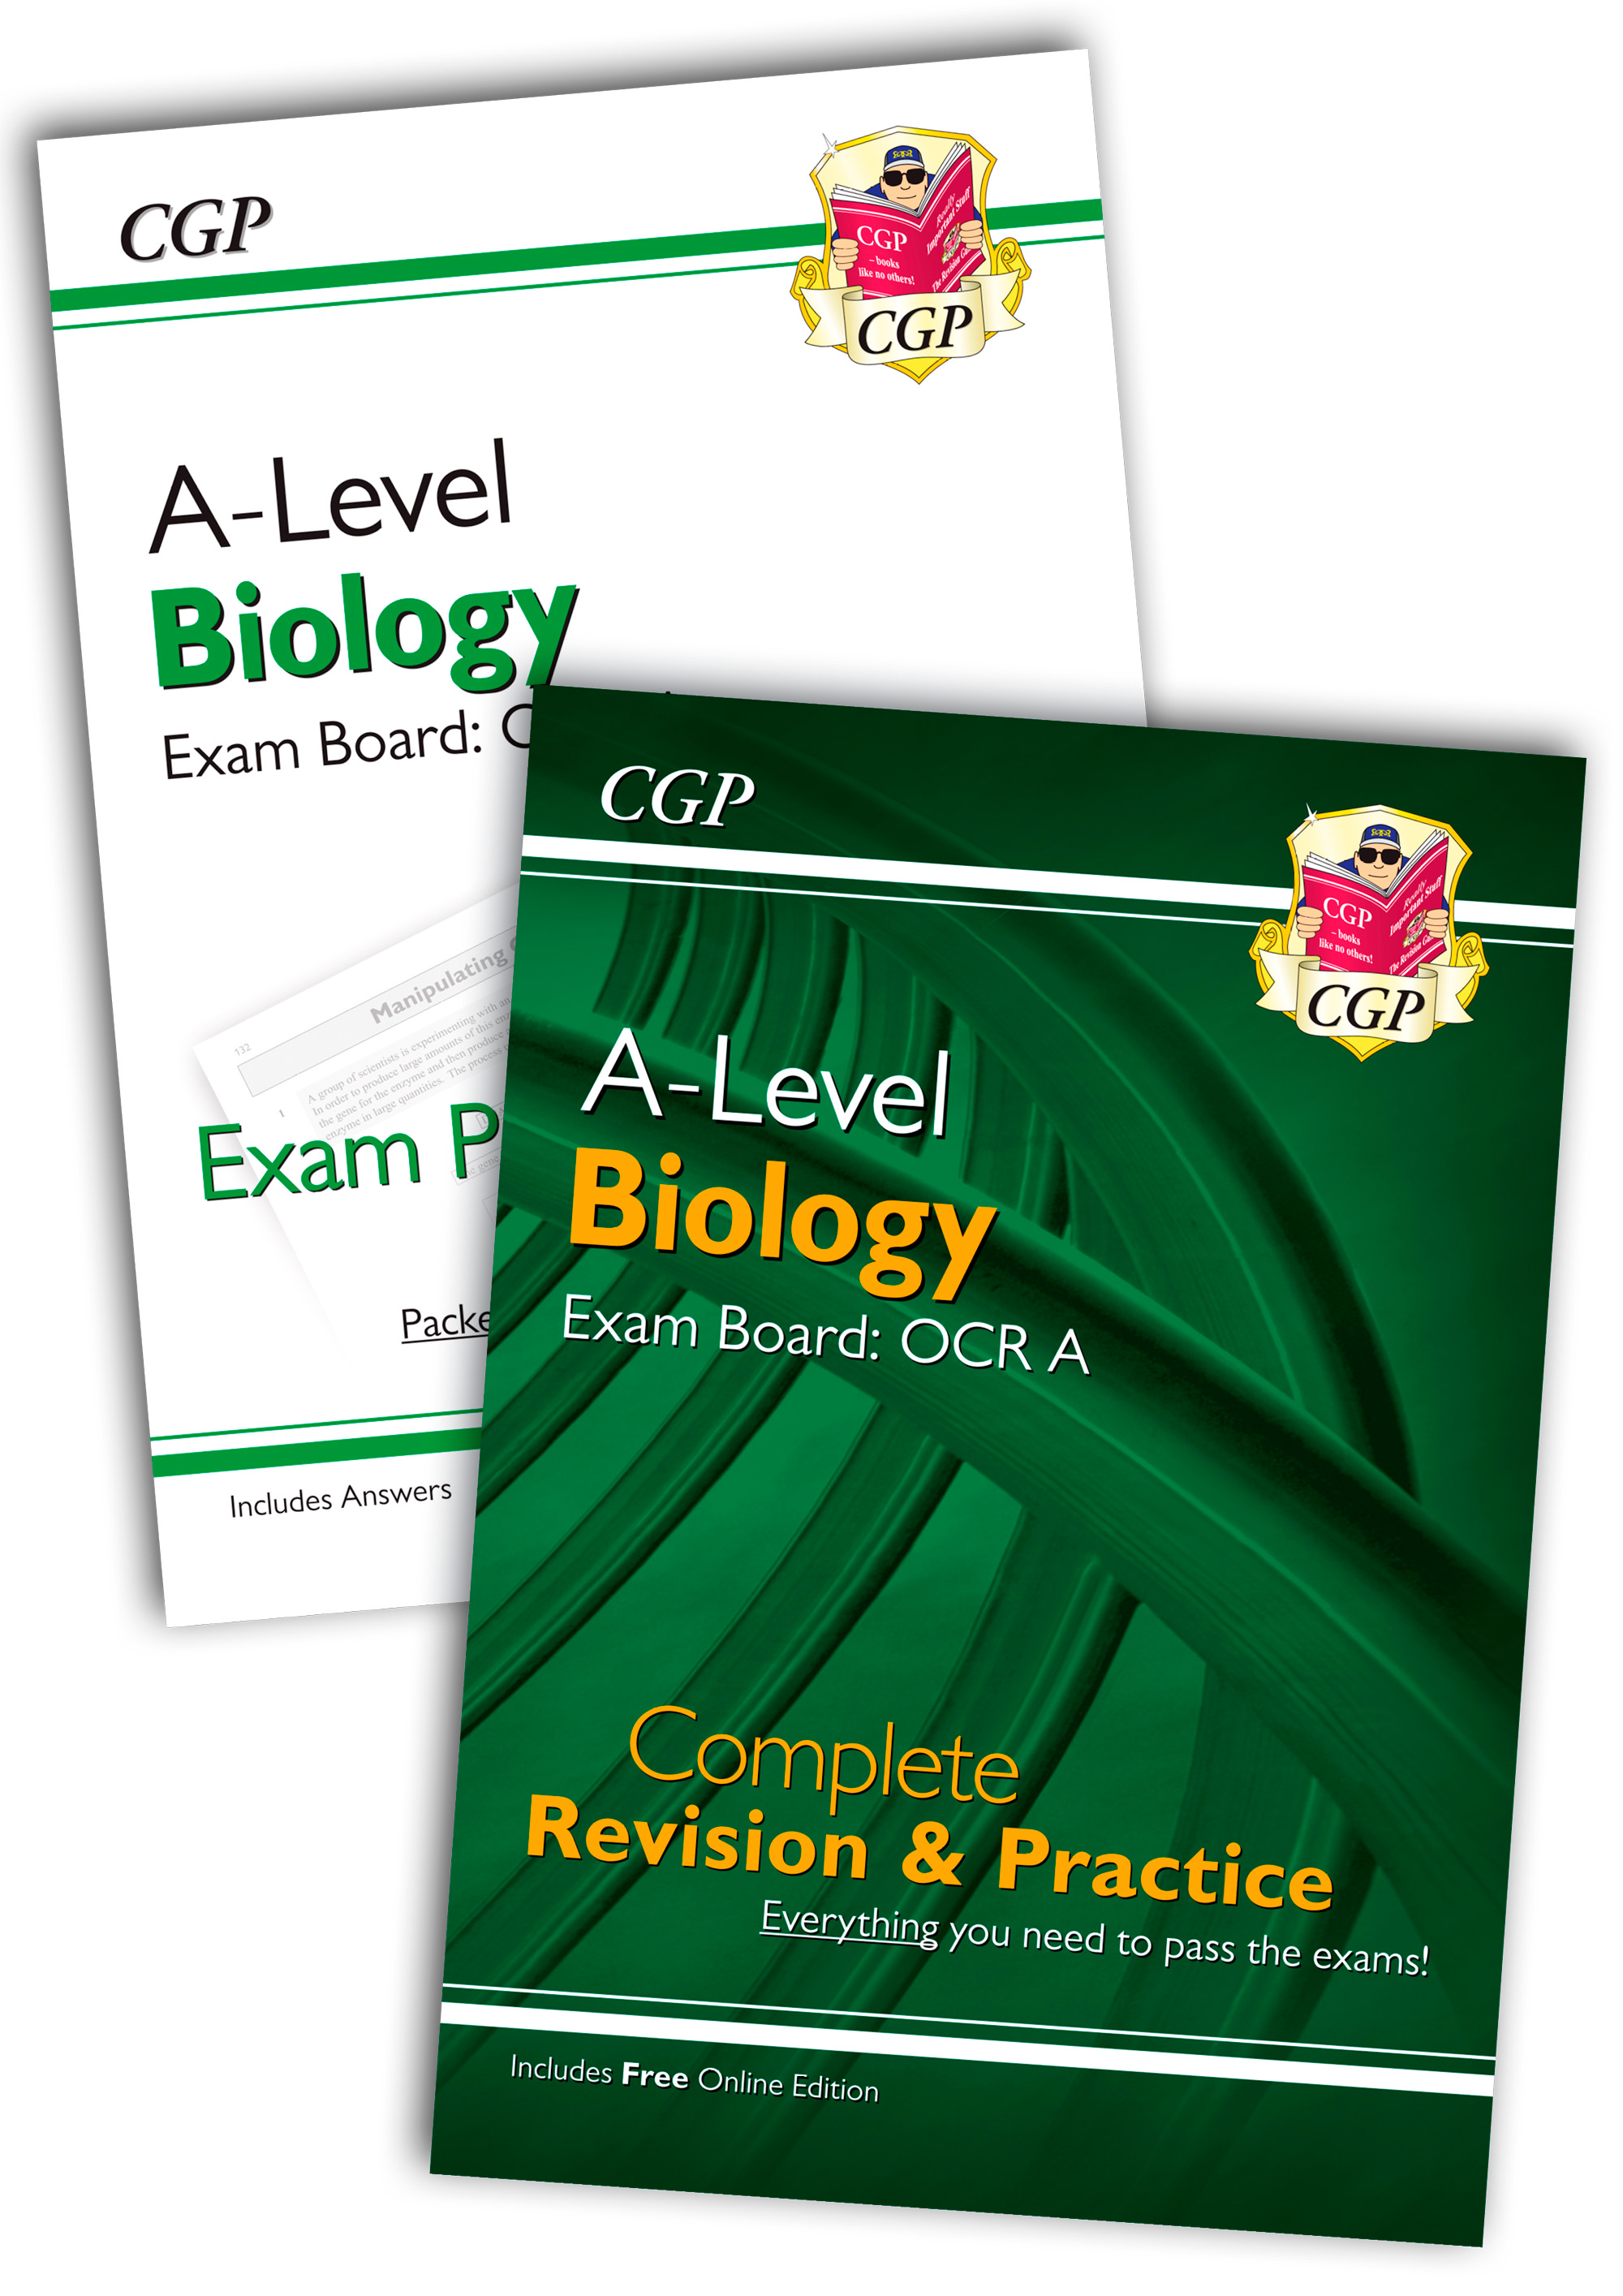 BRARQB71 - Complete Revision and Exam Practice A-Level Biology Bundle: OCR A Year 1 & 2